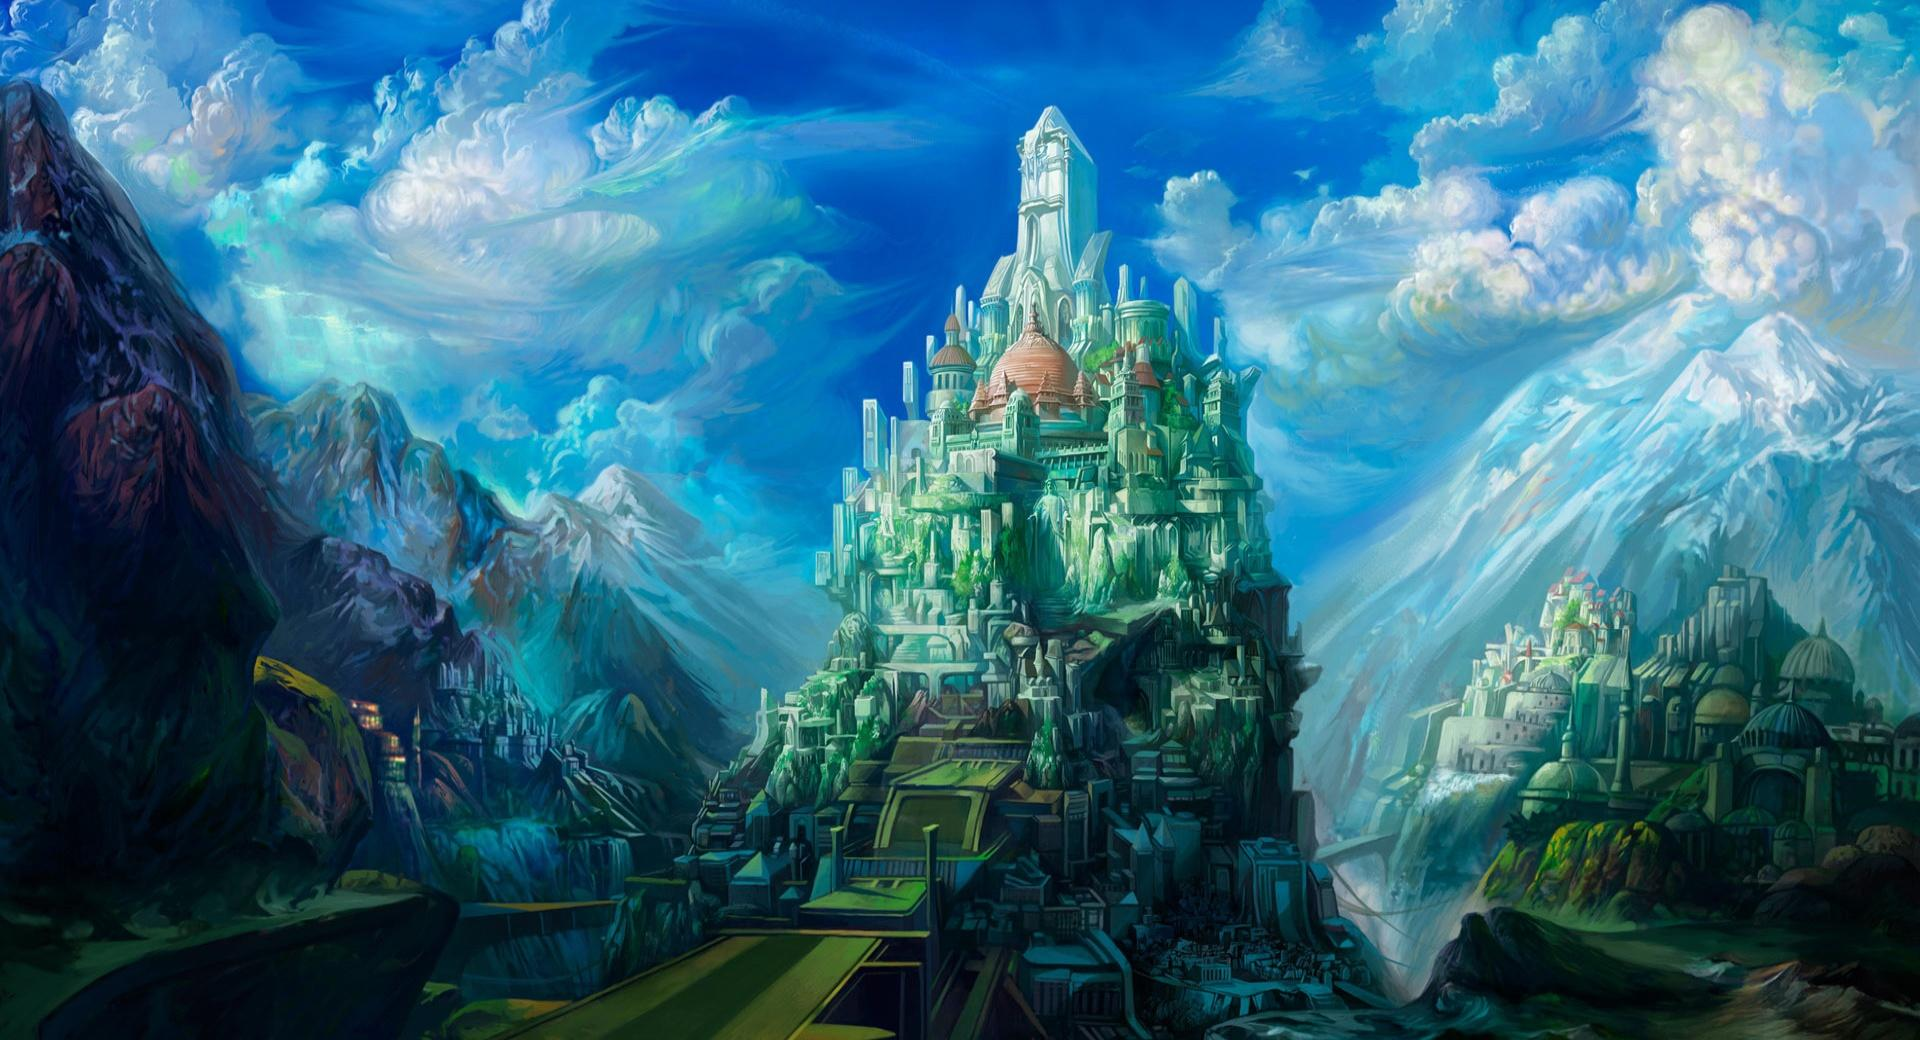 Fantasy Art Scenery by Chen Wei wallpapers HD quality